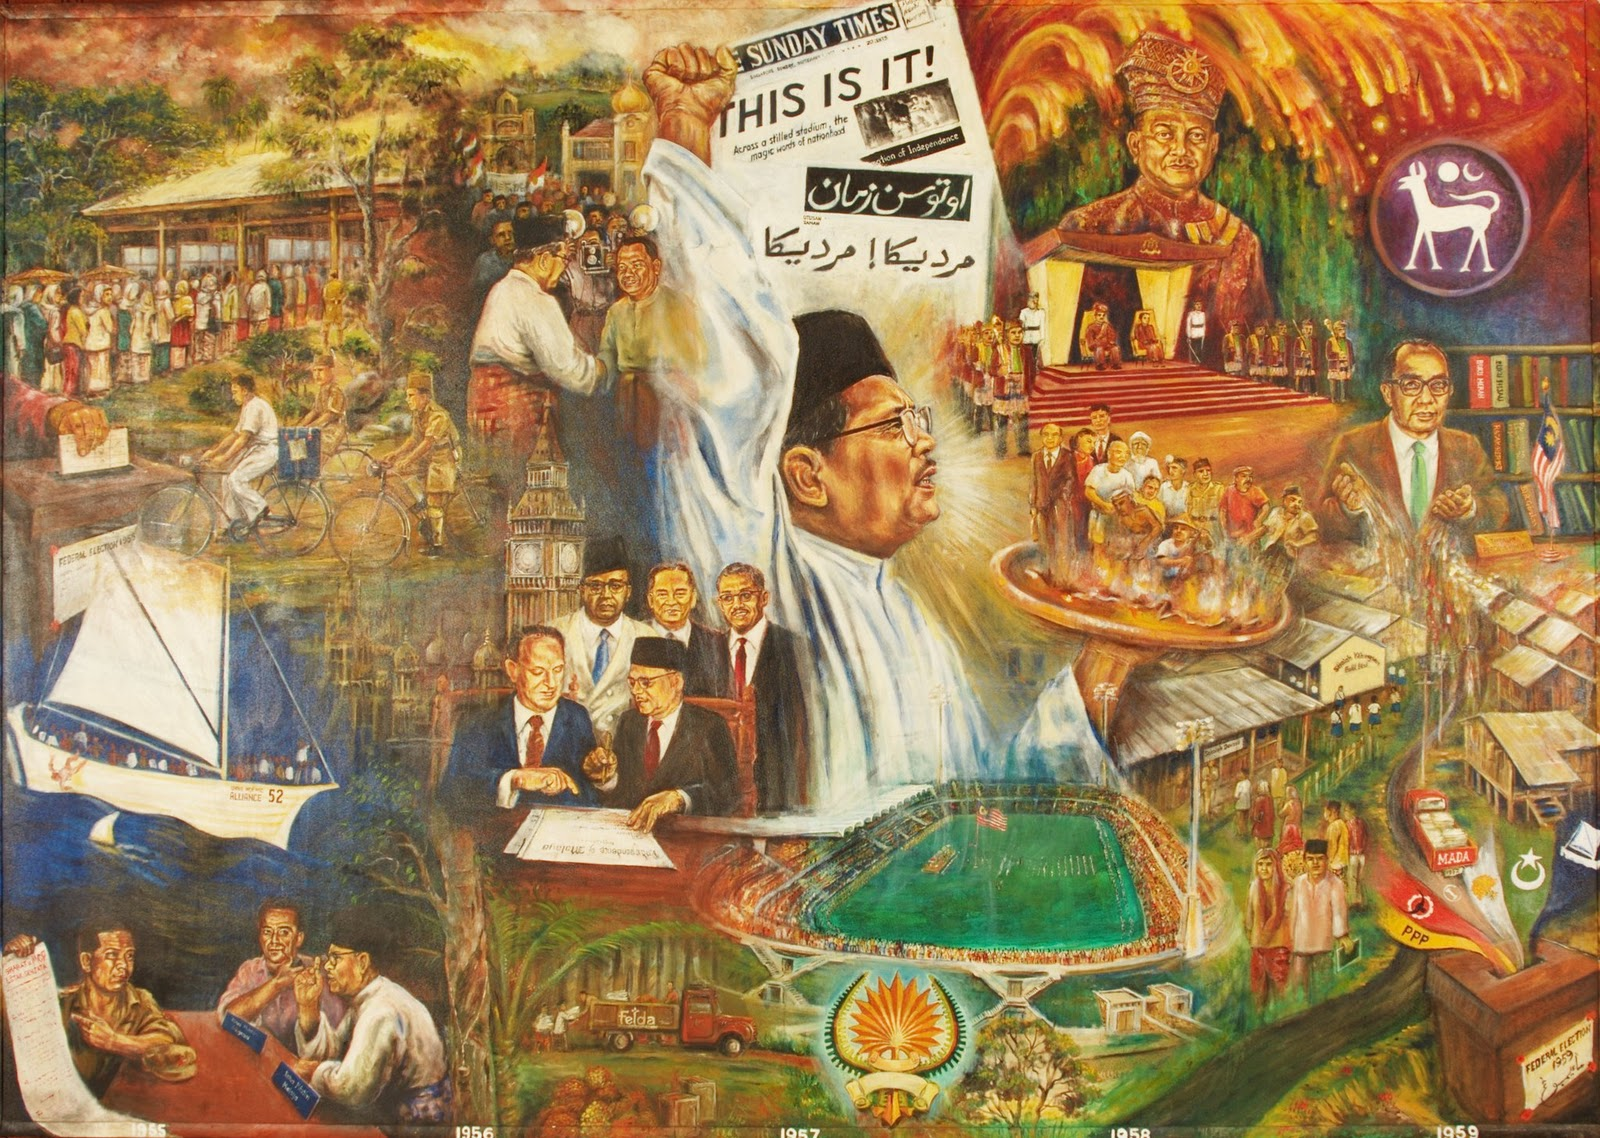 the history of malaysia Scroll right and click on the icons or text to explore an era of malaysia's history.